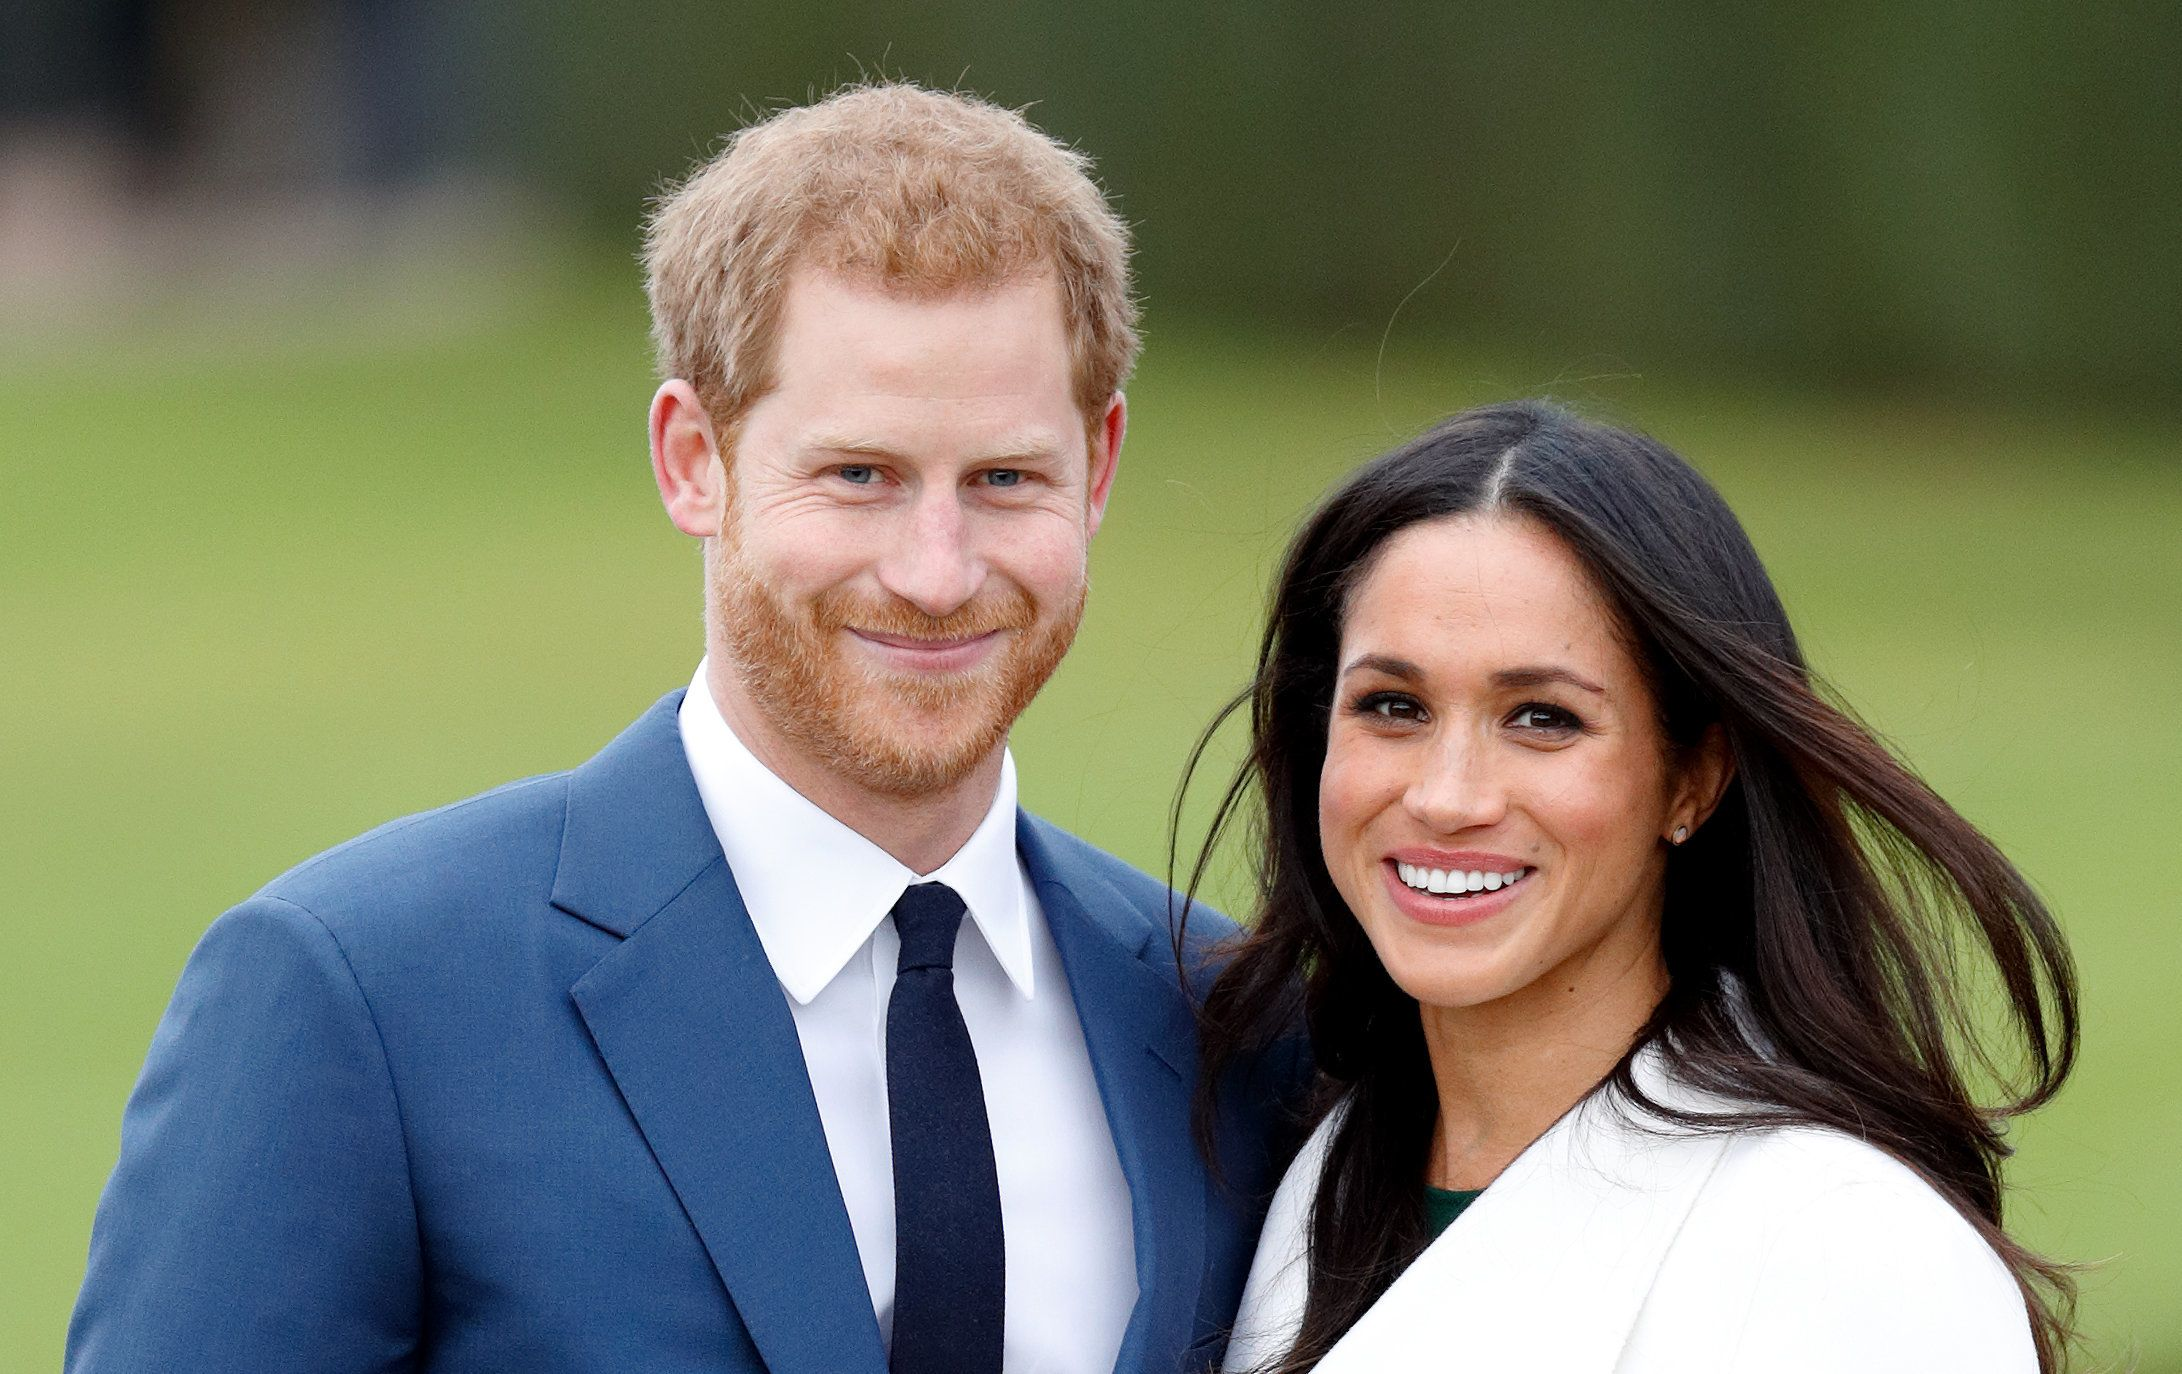 Prince Harry and Meghan Markle Attend First Official Royal Engagement Together